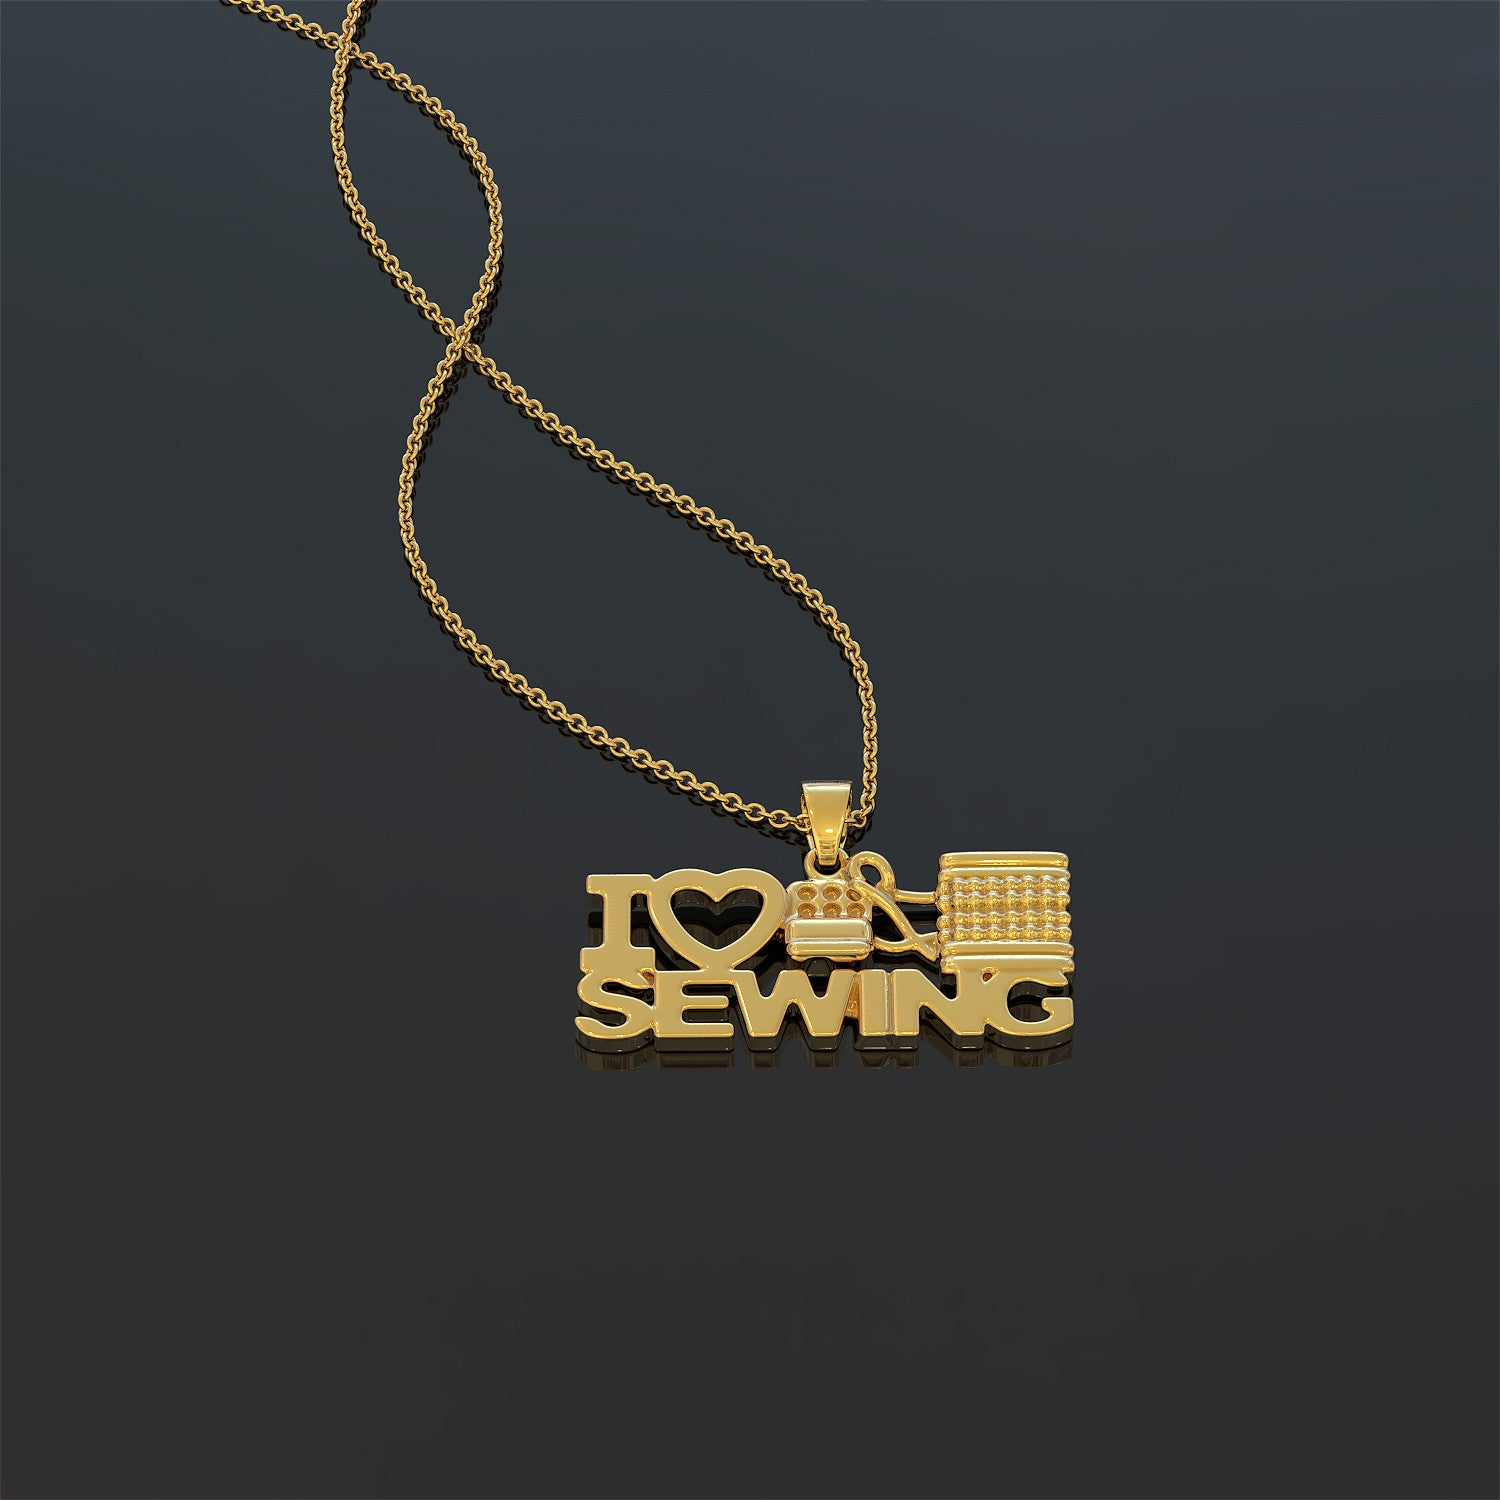 I Heart Sewing Necklace - LIMITED EDITION